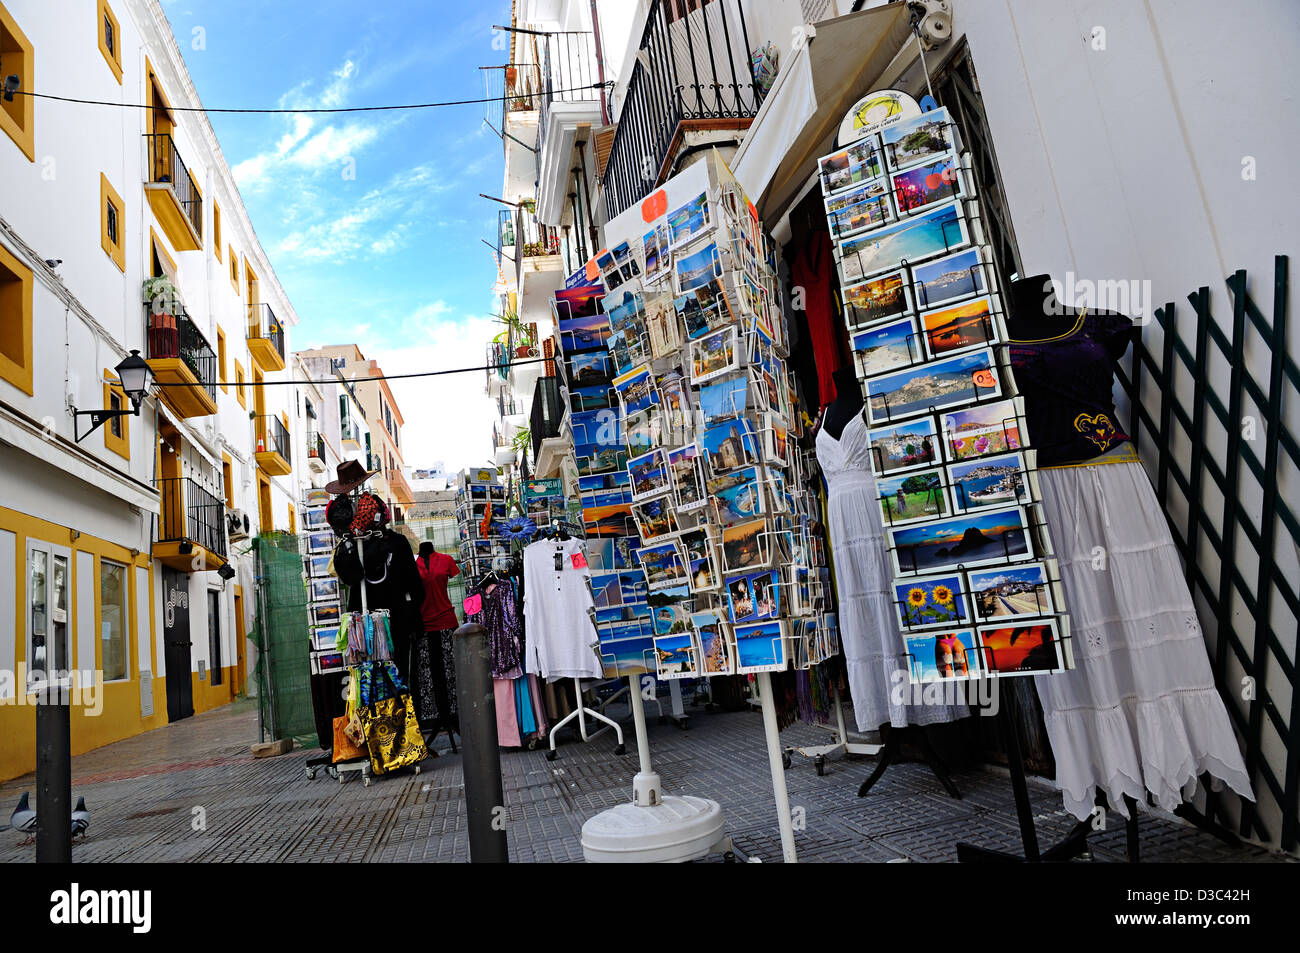 souvenirs ibiza stockfotos souvenirs ibiza bilder alamy. Black Bedroom Furniture Sets. Home Design Ideas